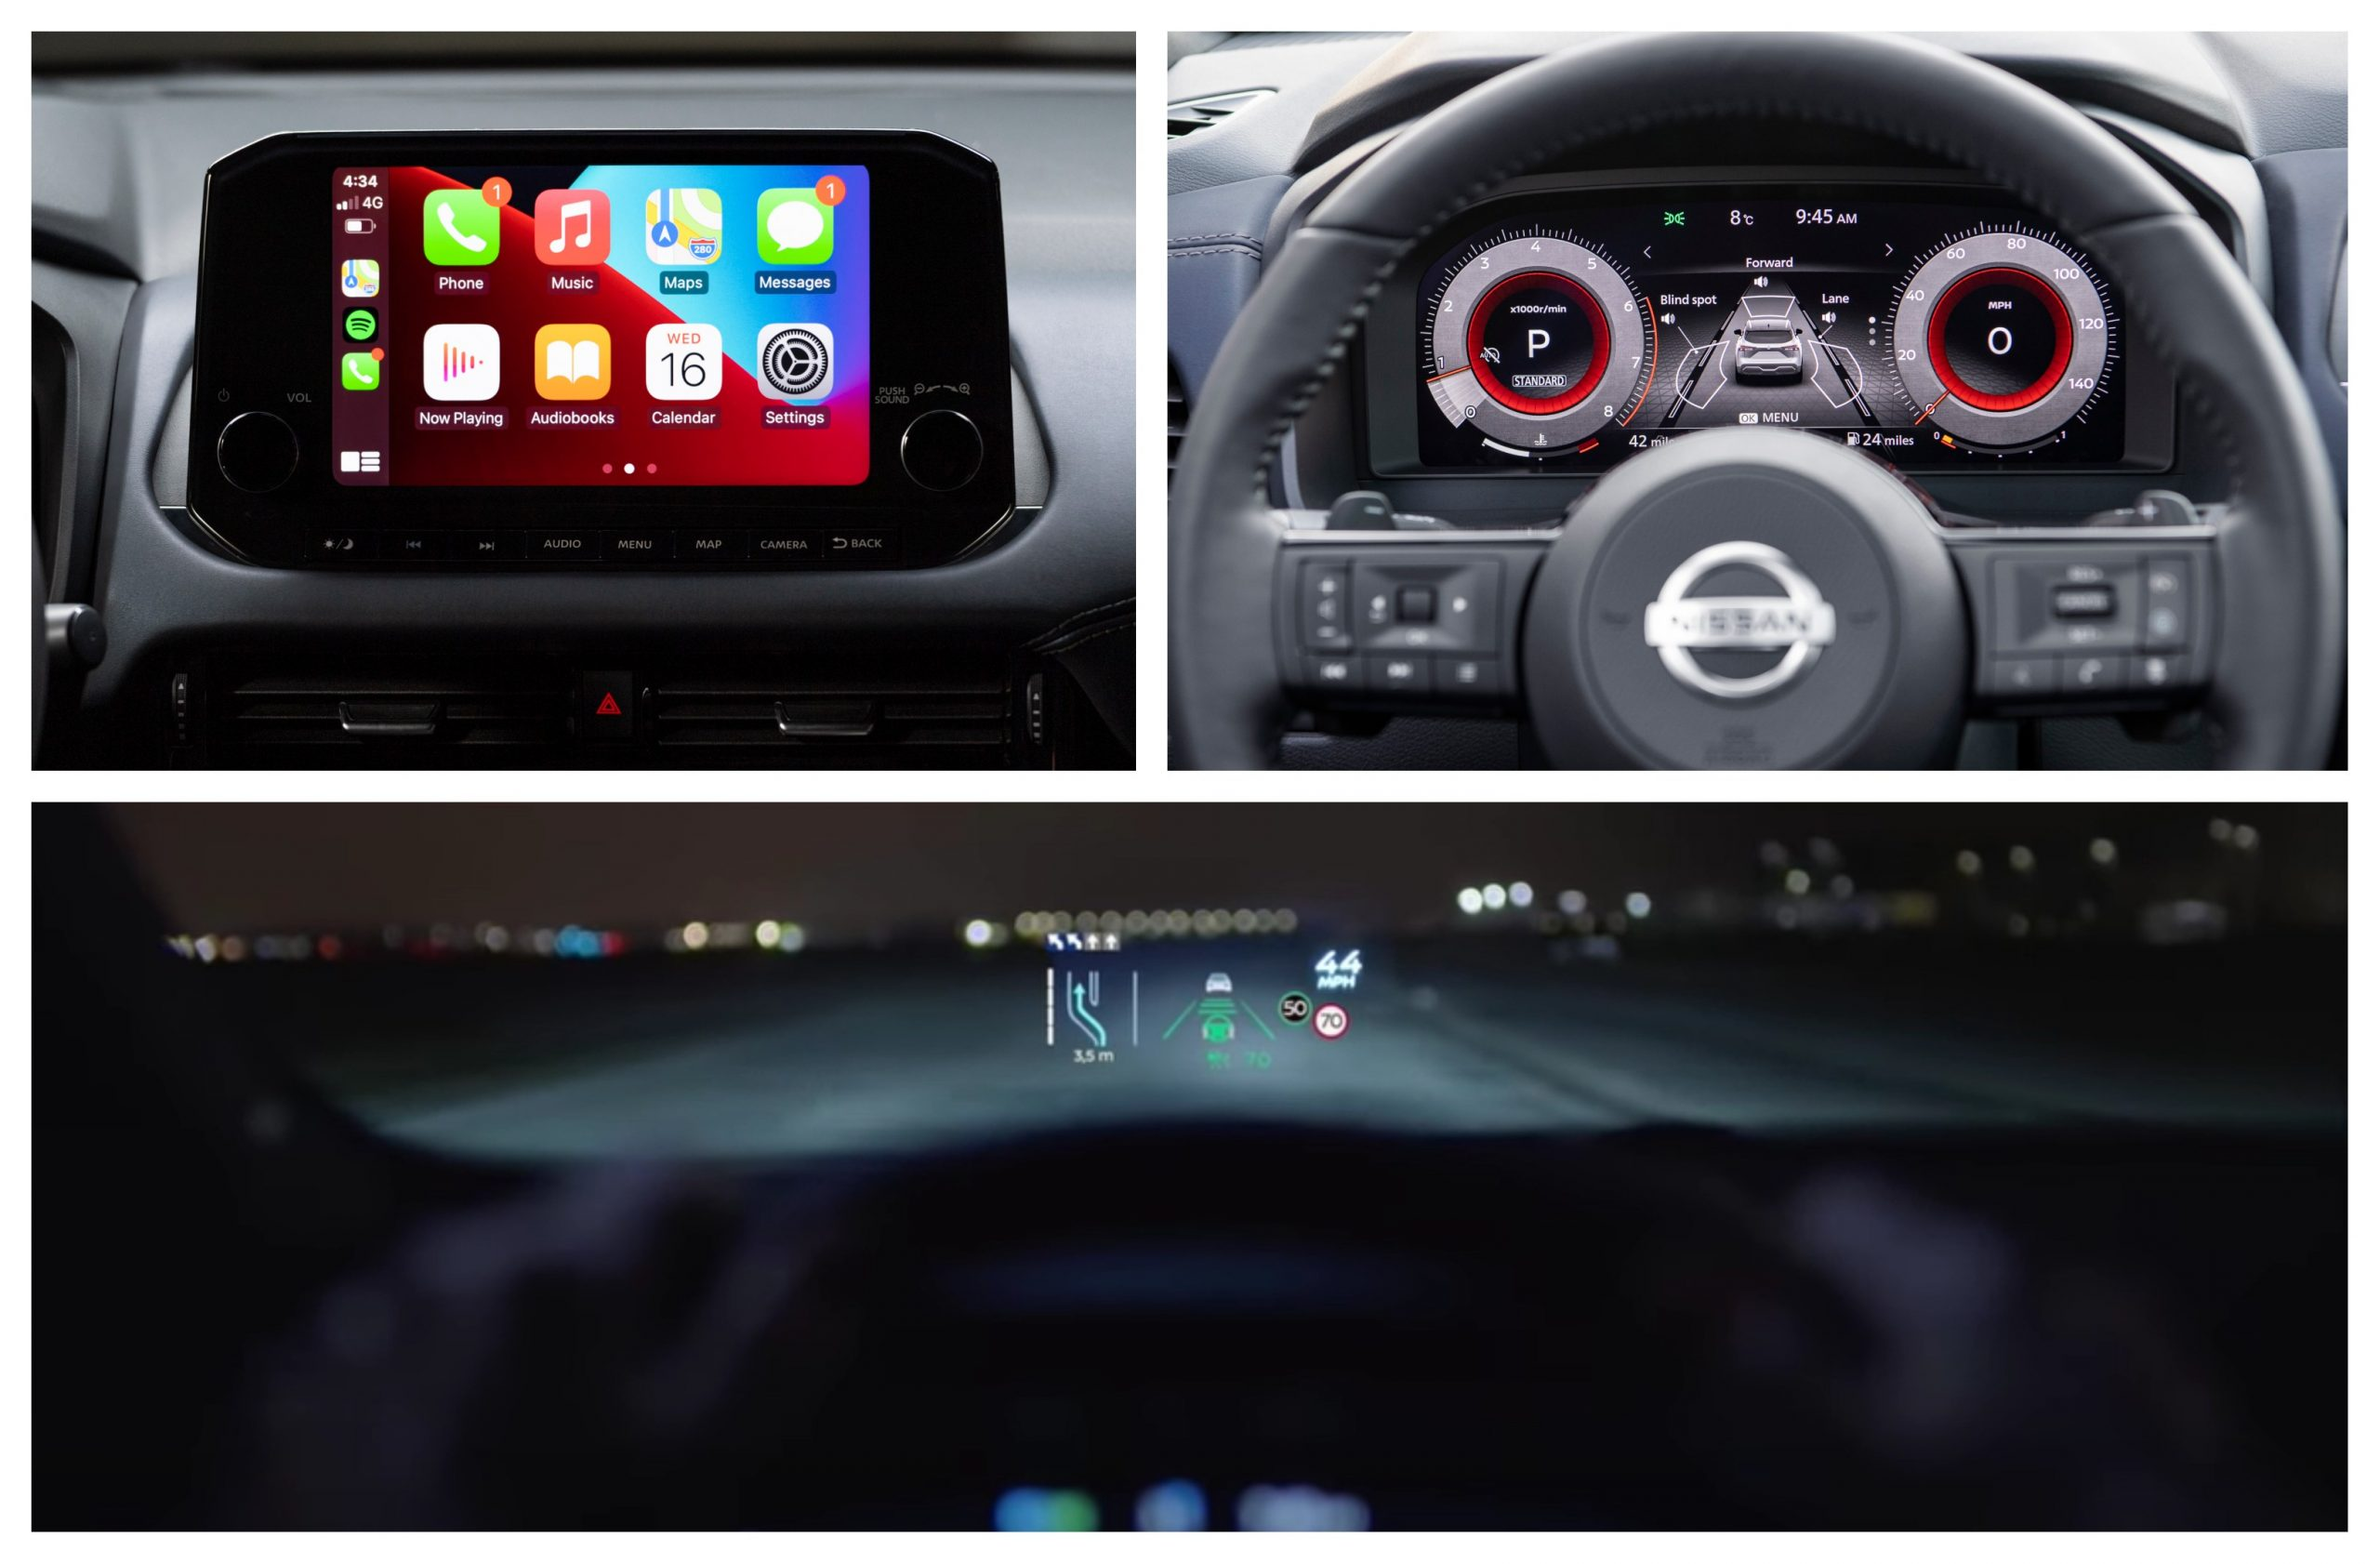 The new Nissan Qashqai's infotainment system is made up of three digital screens.